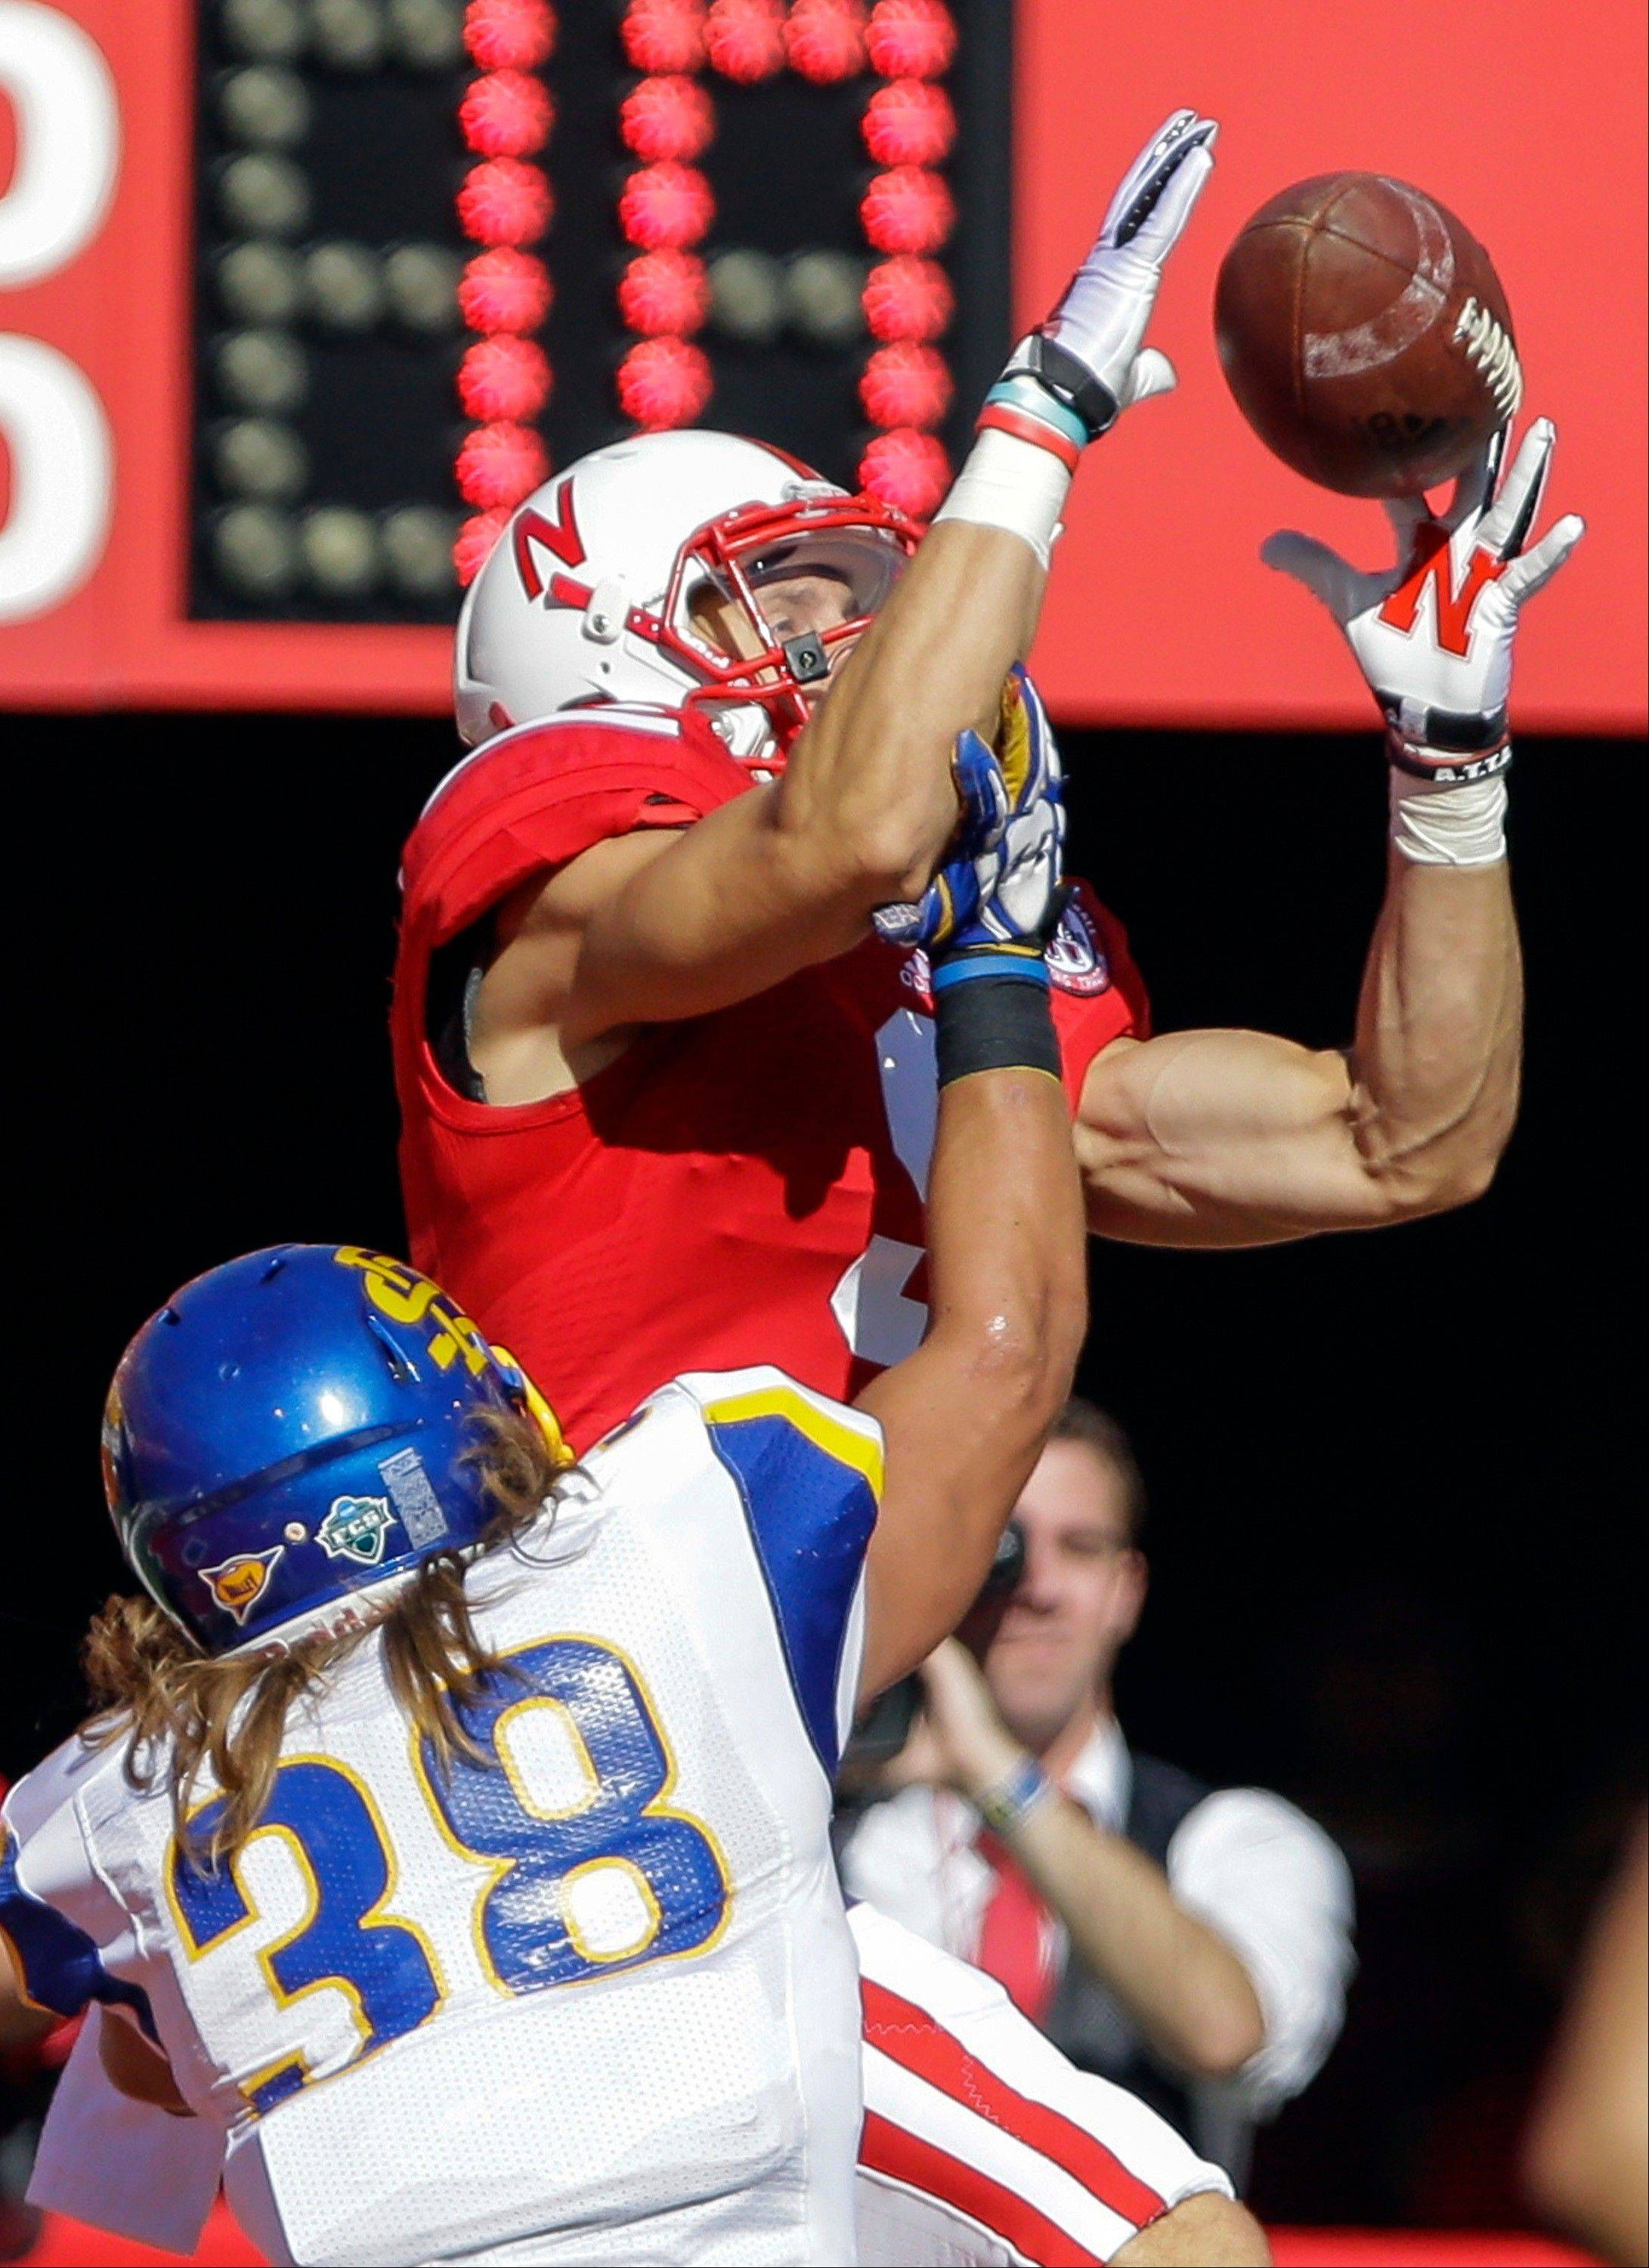 Nebraska wide receiver Sam Burtch, top, catches a touchdown pass over South Dakota State defensive back Jake Gentile in the first half of Saturday's game in Lincoln, Neb.